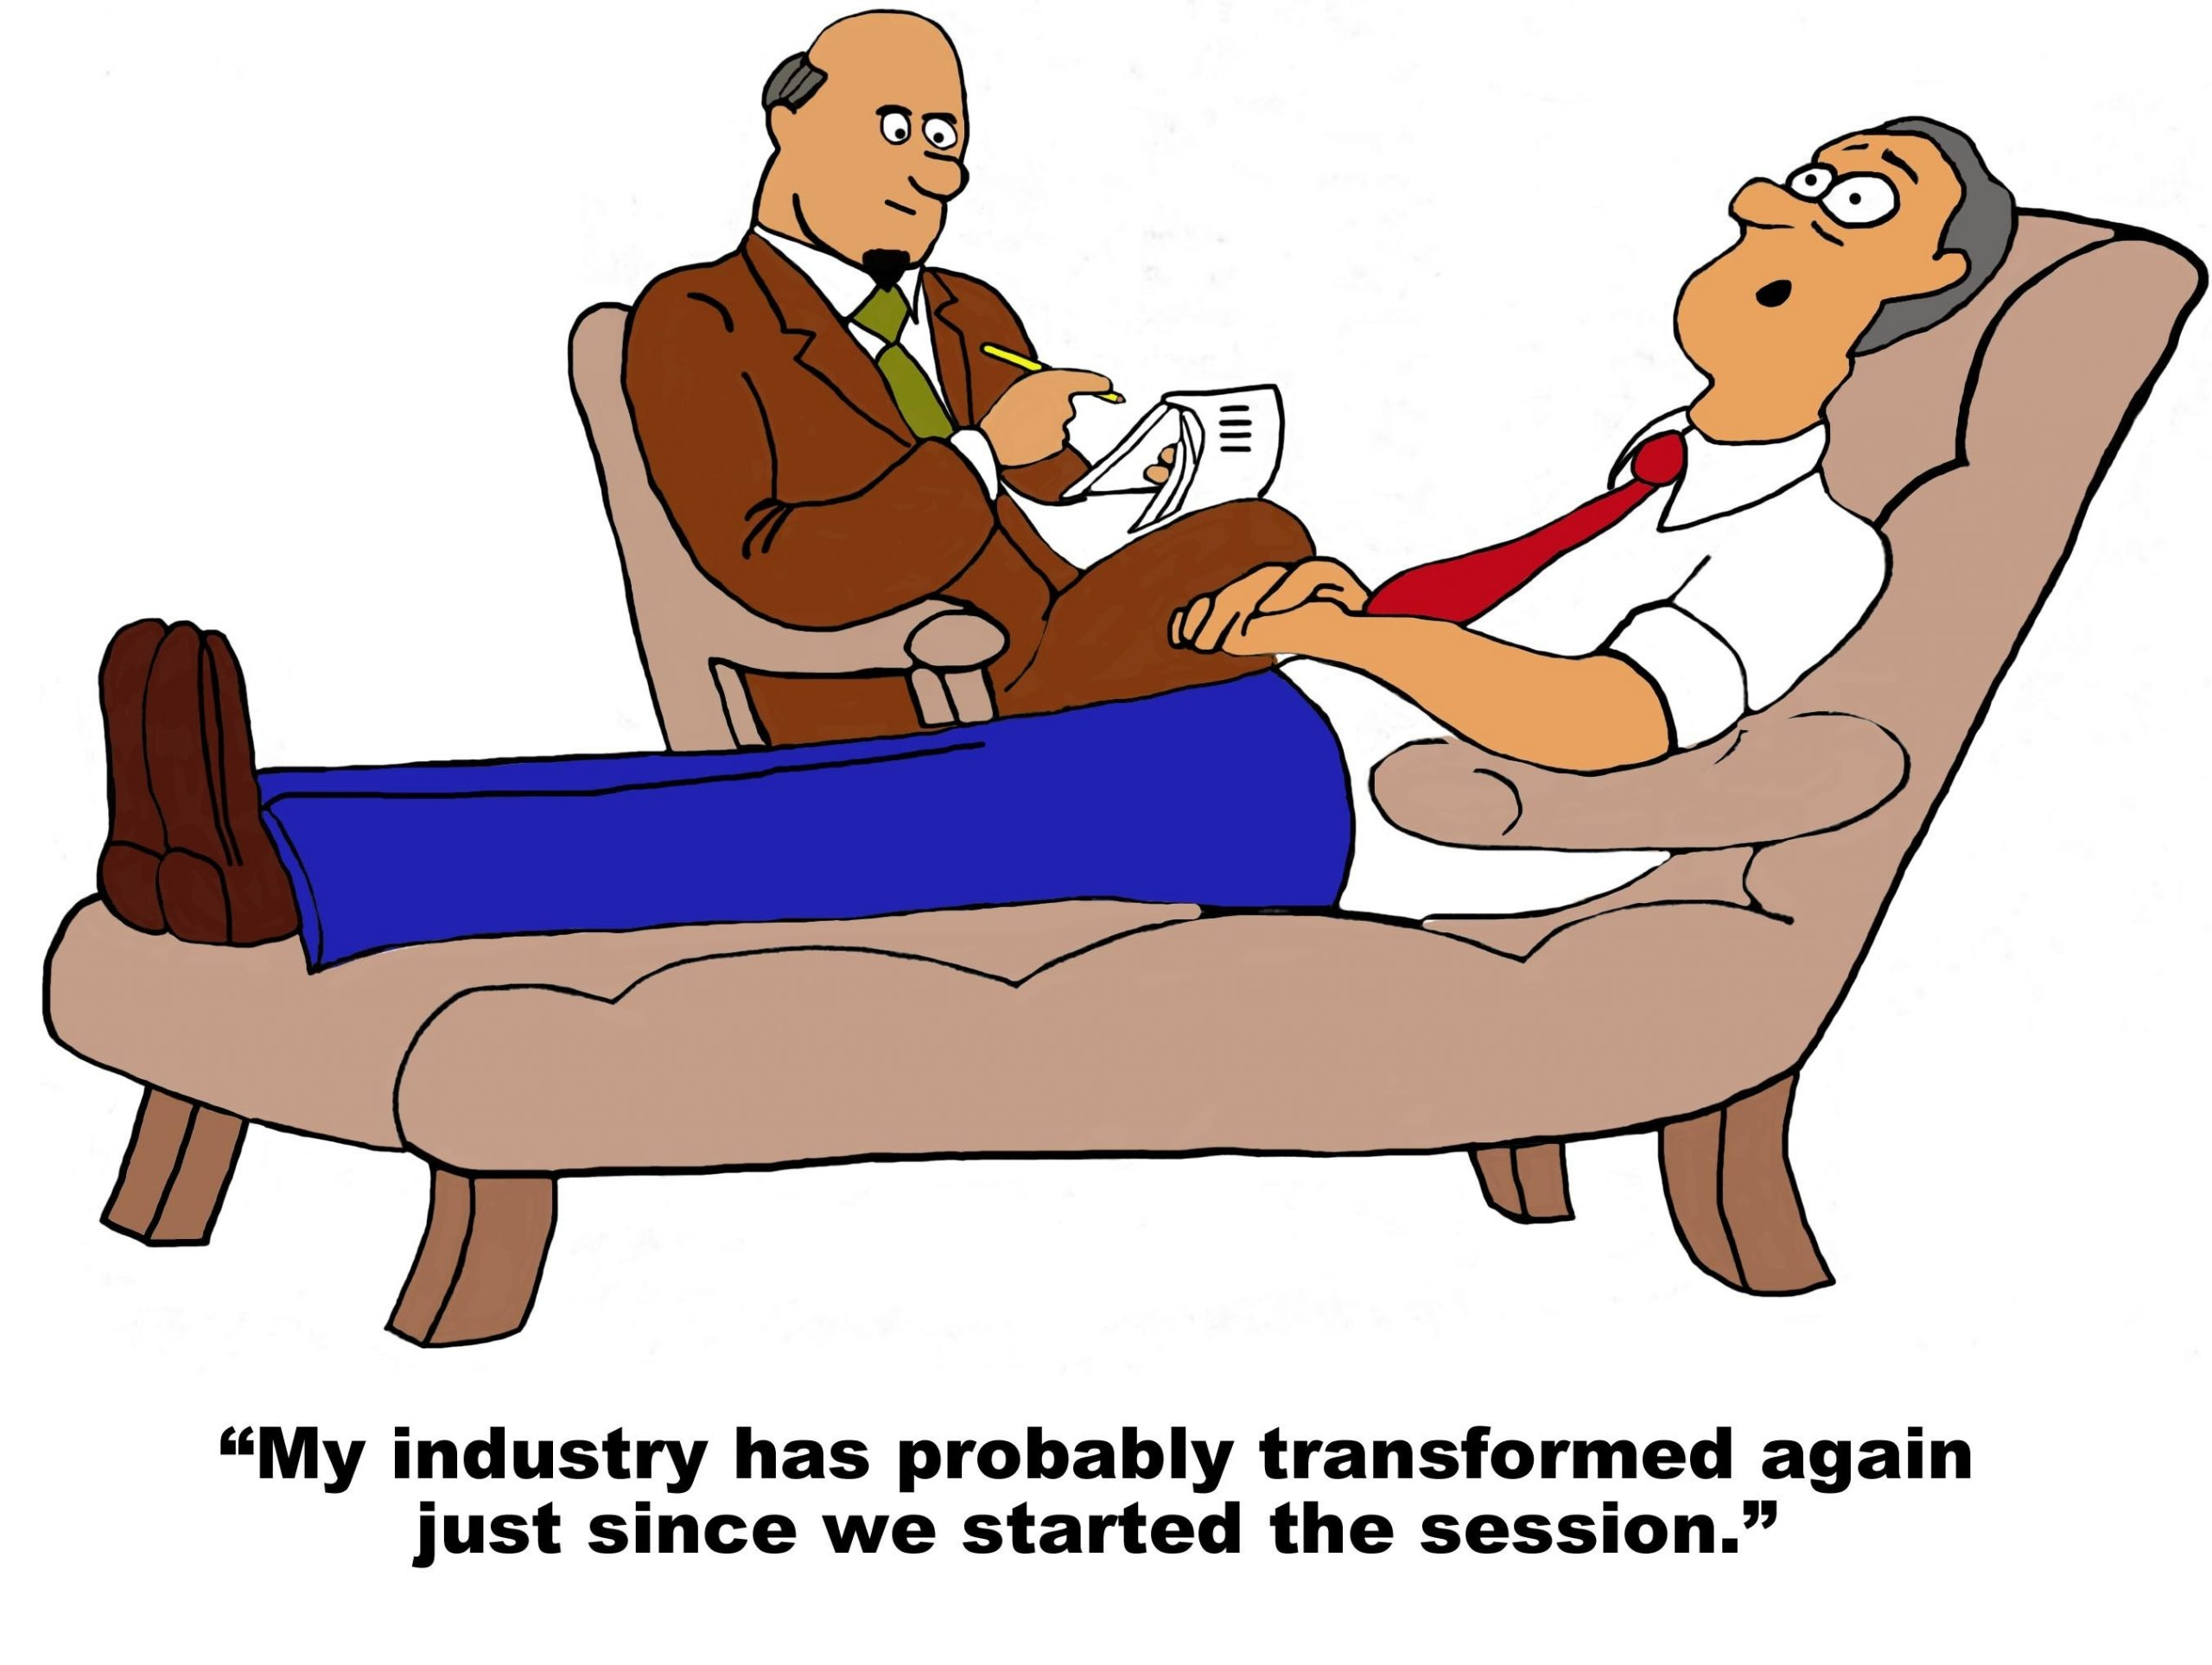 my industry has probably transformed again just since we started the session, change management business cartoons comics